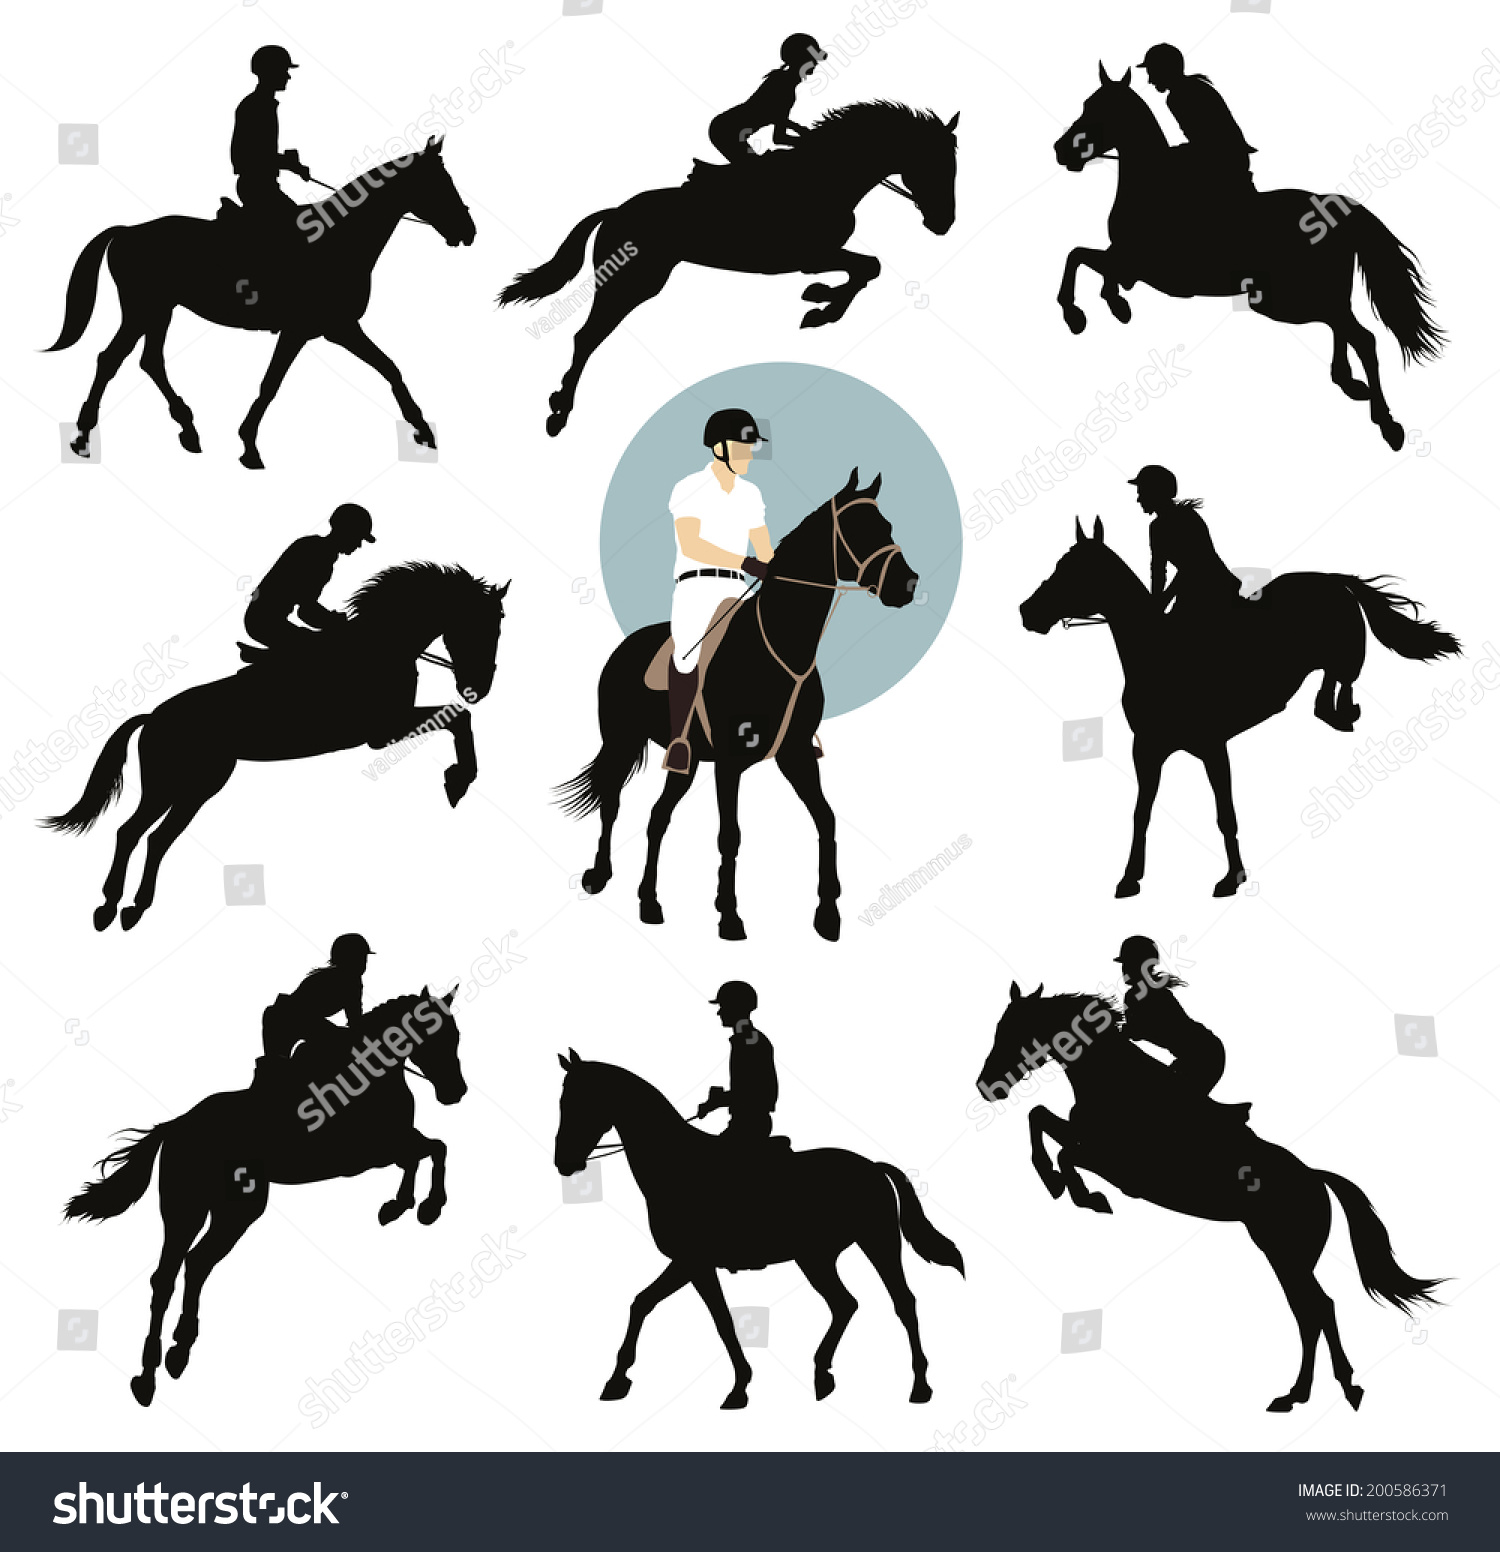 Horse Rider Jumping Silhouettes Set Equestrian Stock ...